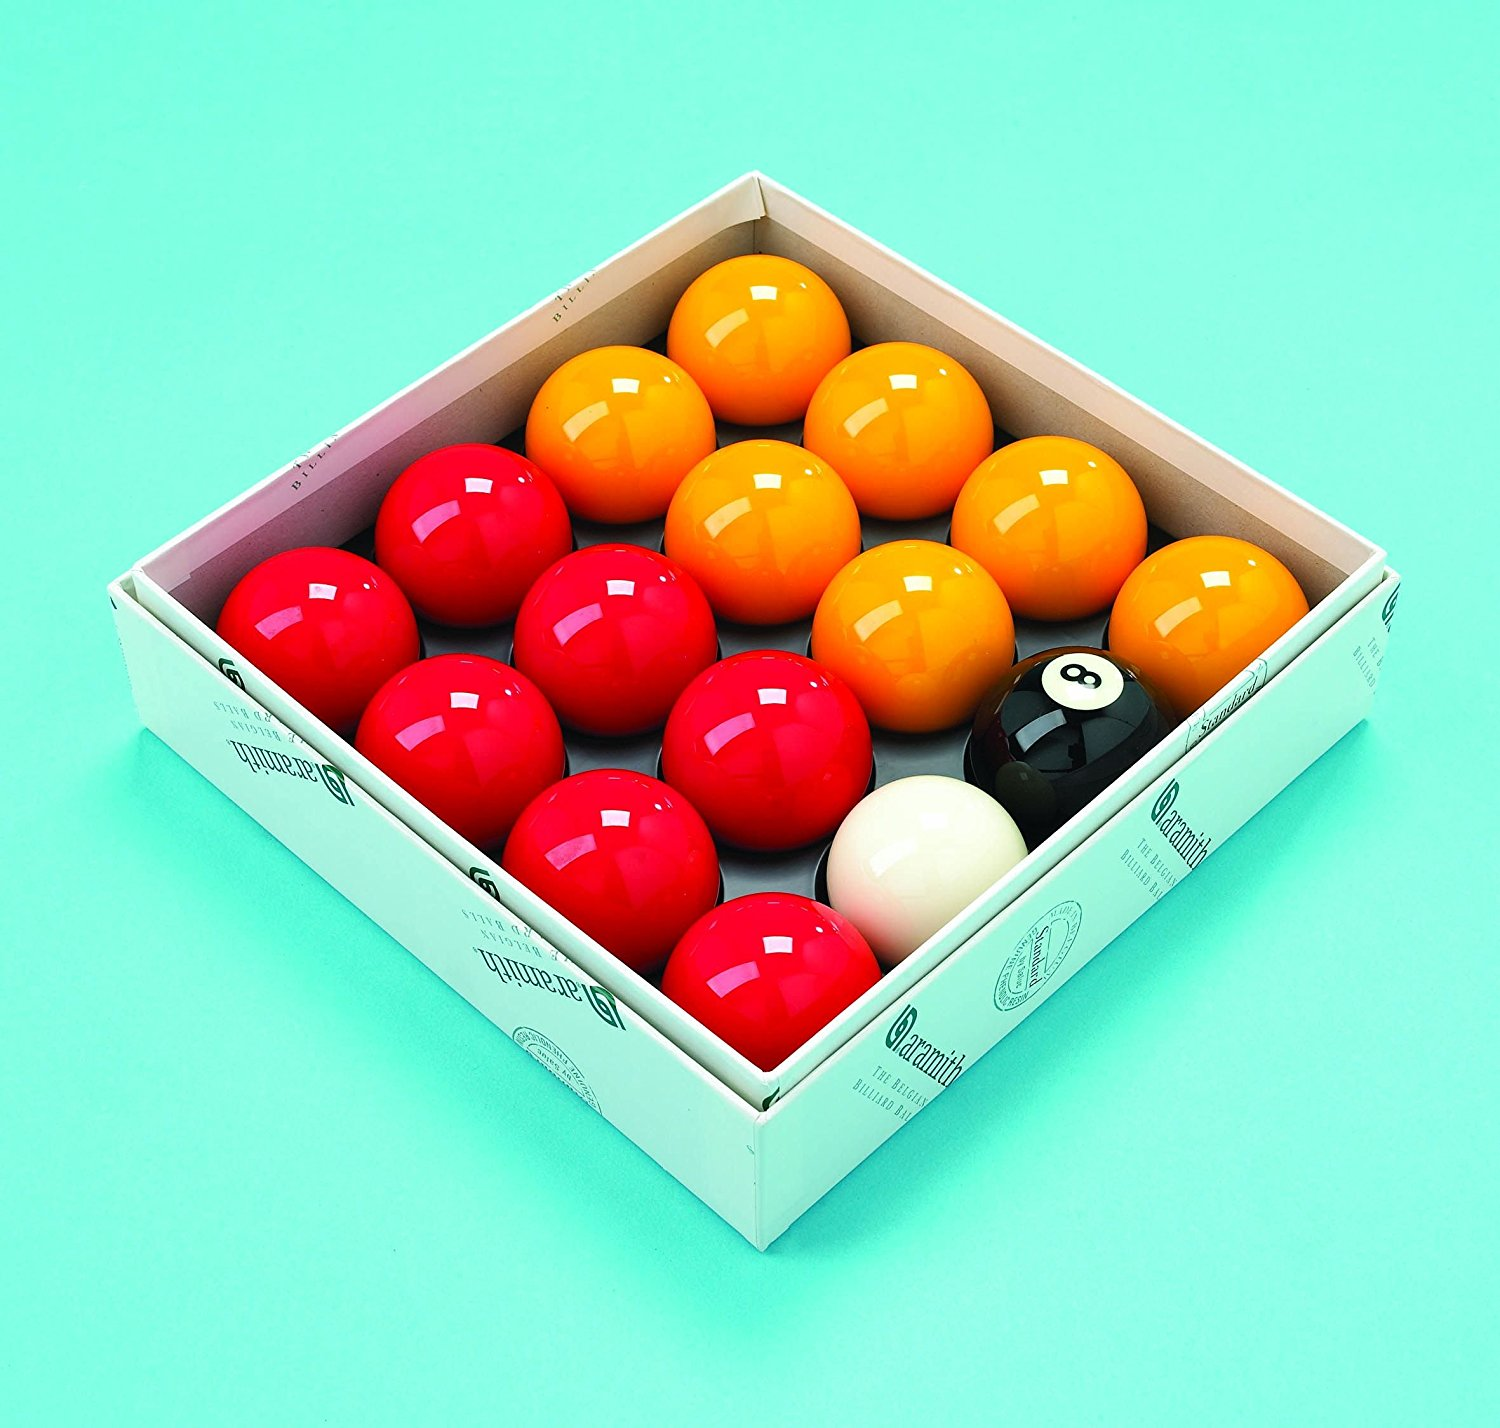 Standard Red and Yellow Pool balls